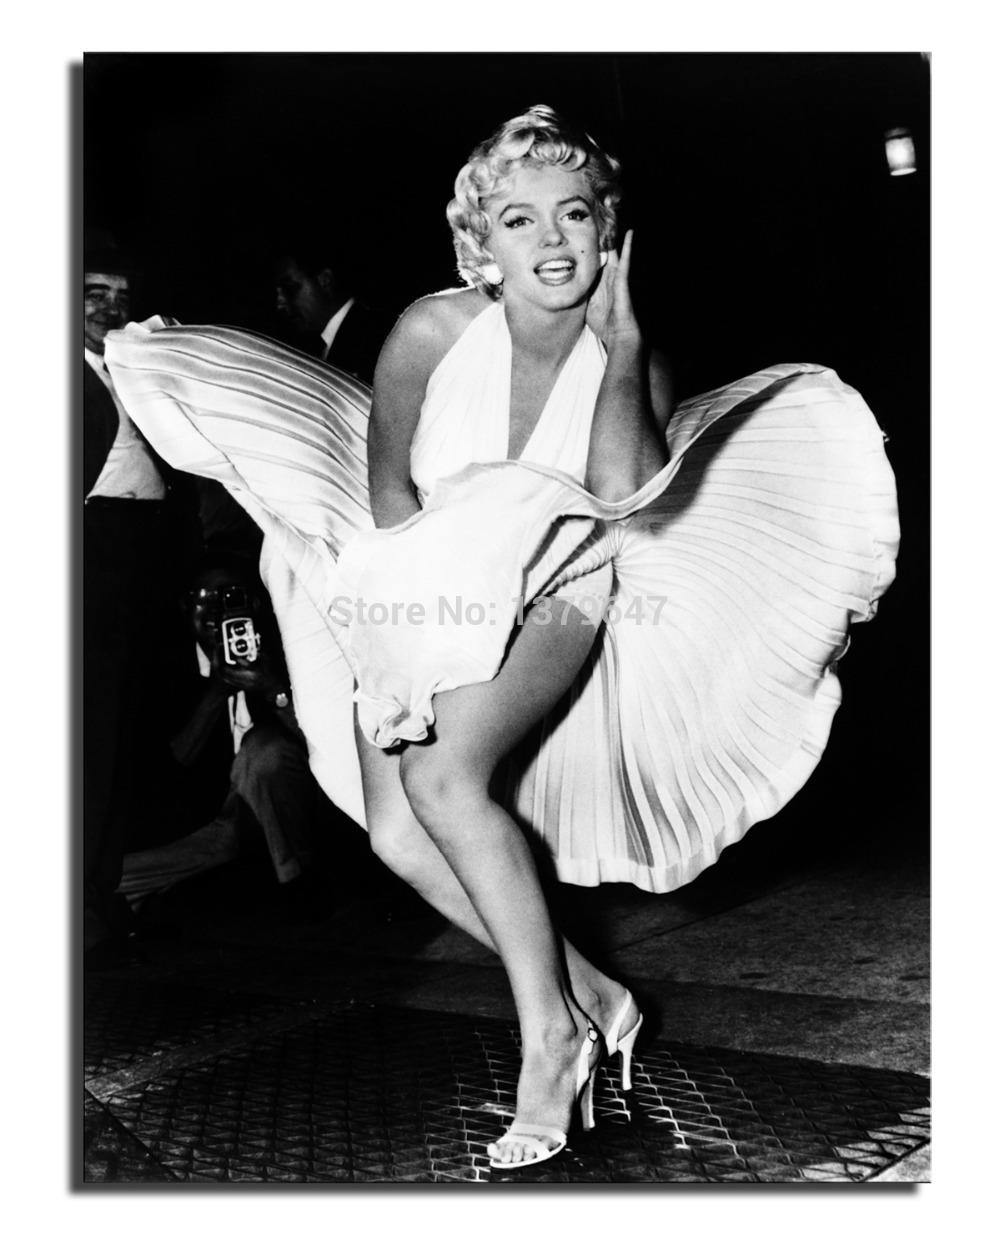 Online Get Cheap Marilyn Monroe Room Aliexpress | Alibaba Group With Regard To Marilyn Monroe Framed Wall Art (View 6 of 20)